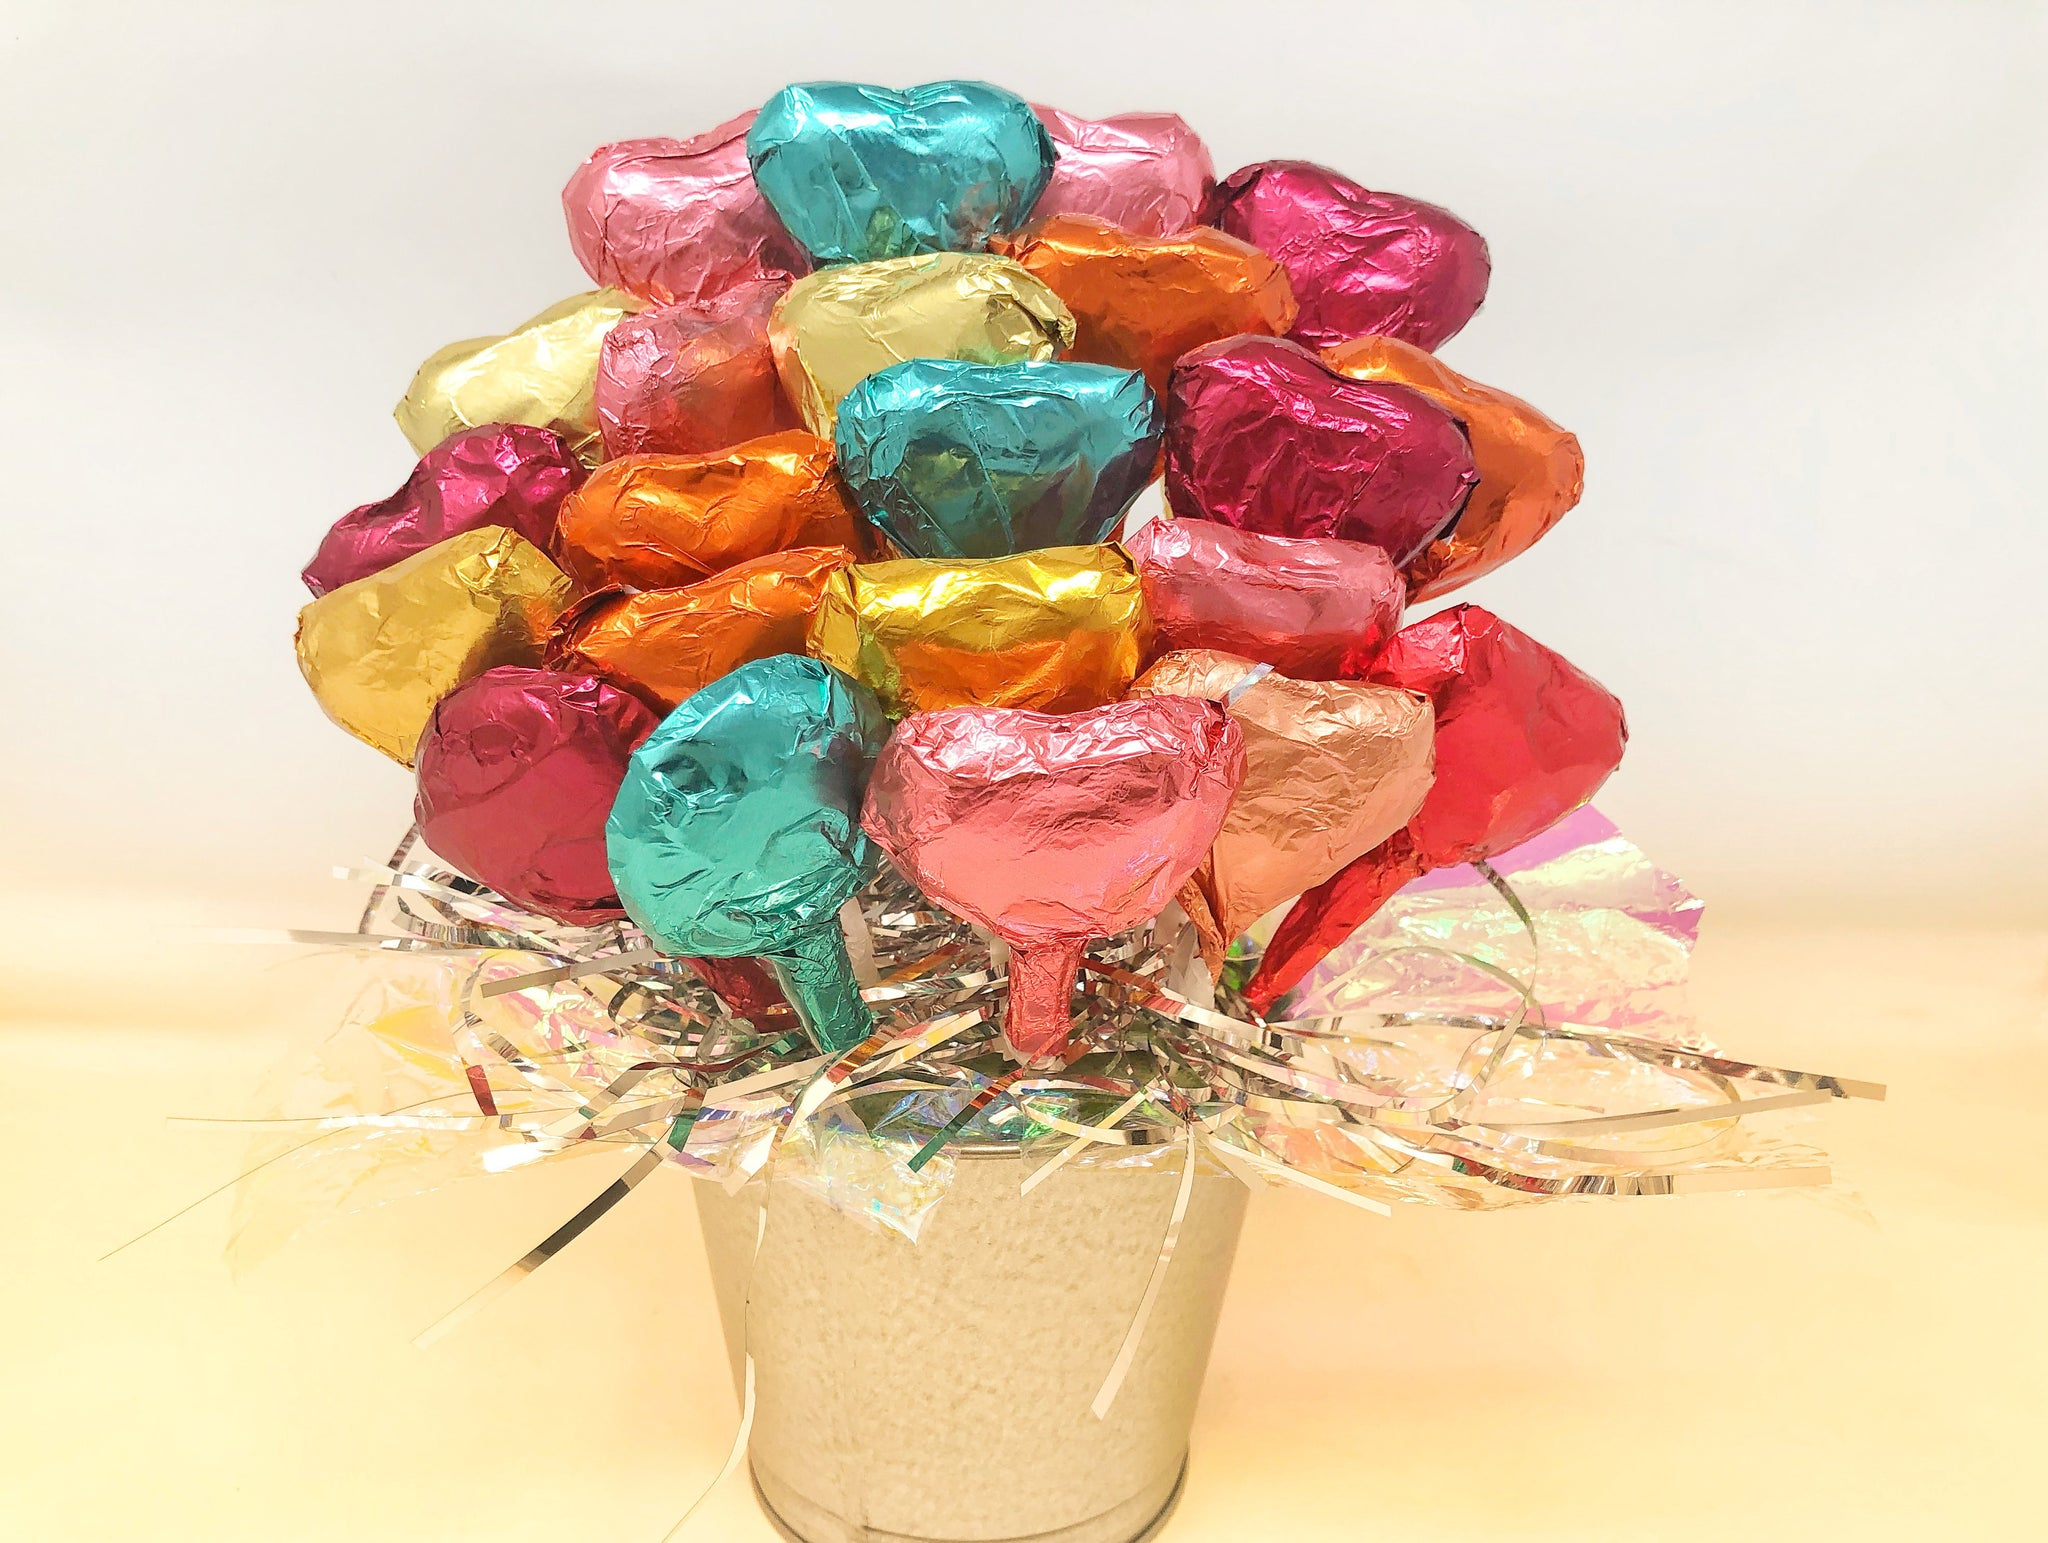 Ruby Chocolates + Assorted Chocolates Flower Bouquet - All Hearts (24 lollipops)